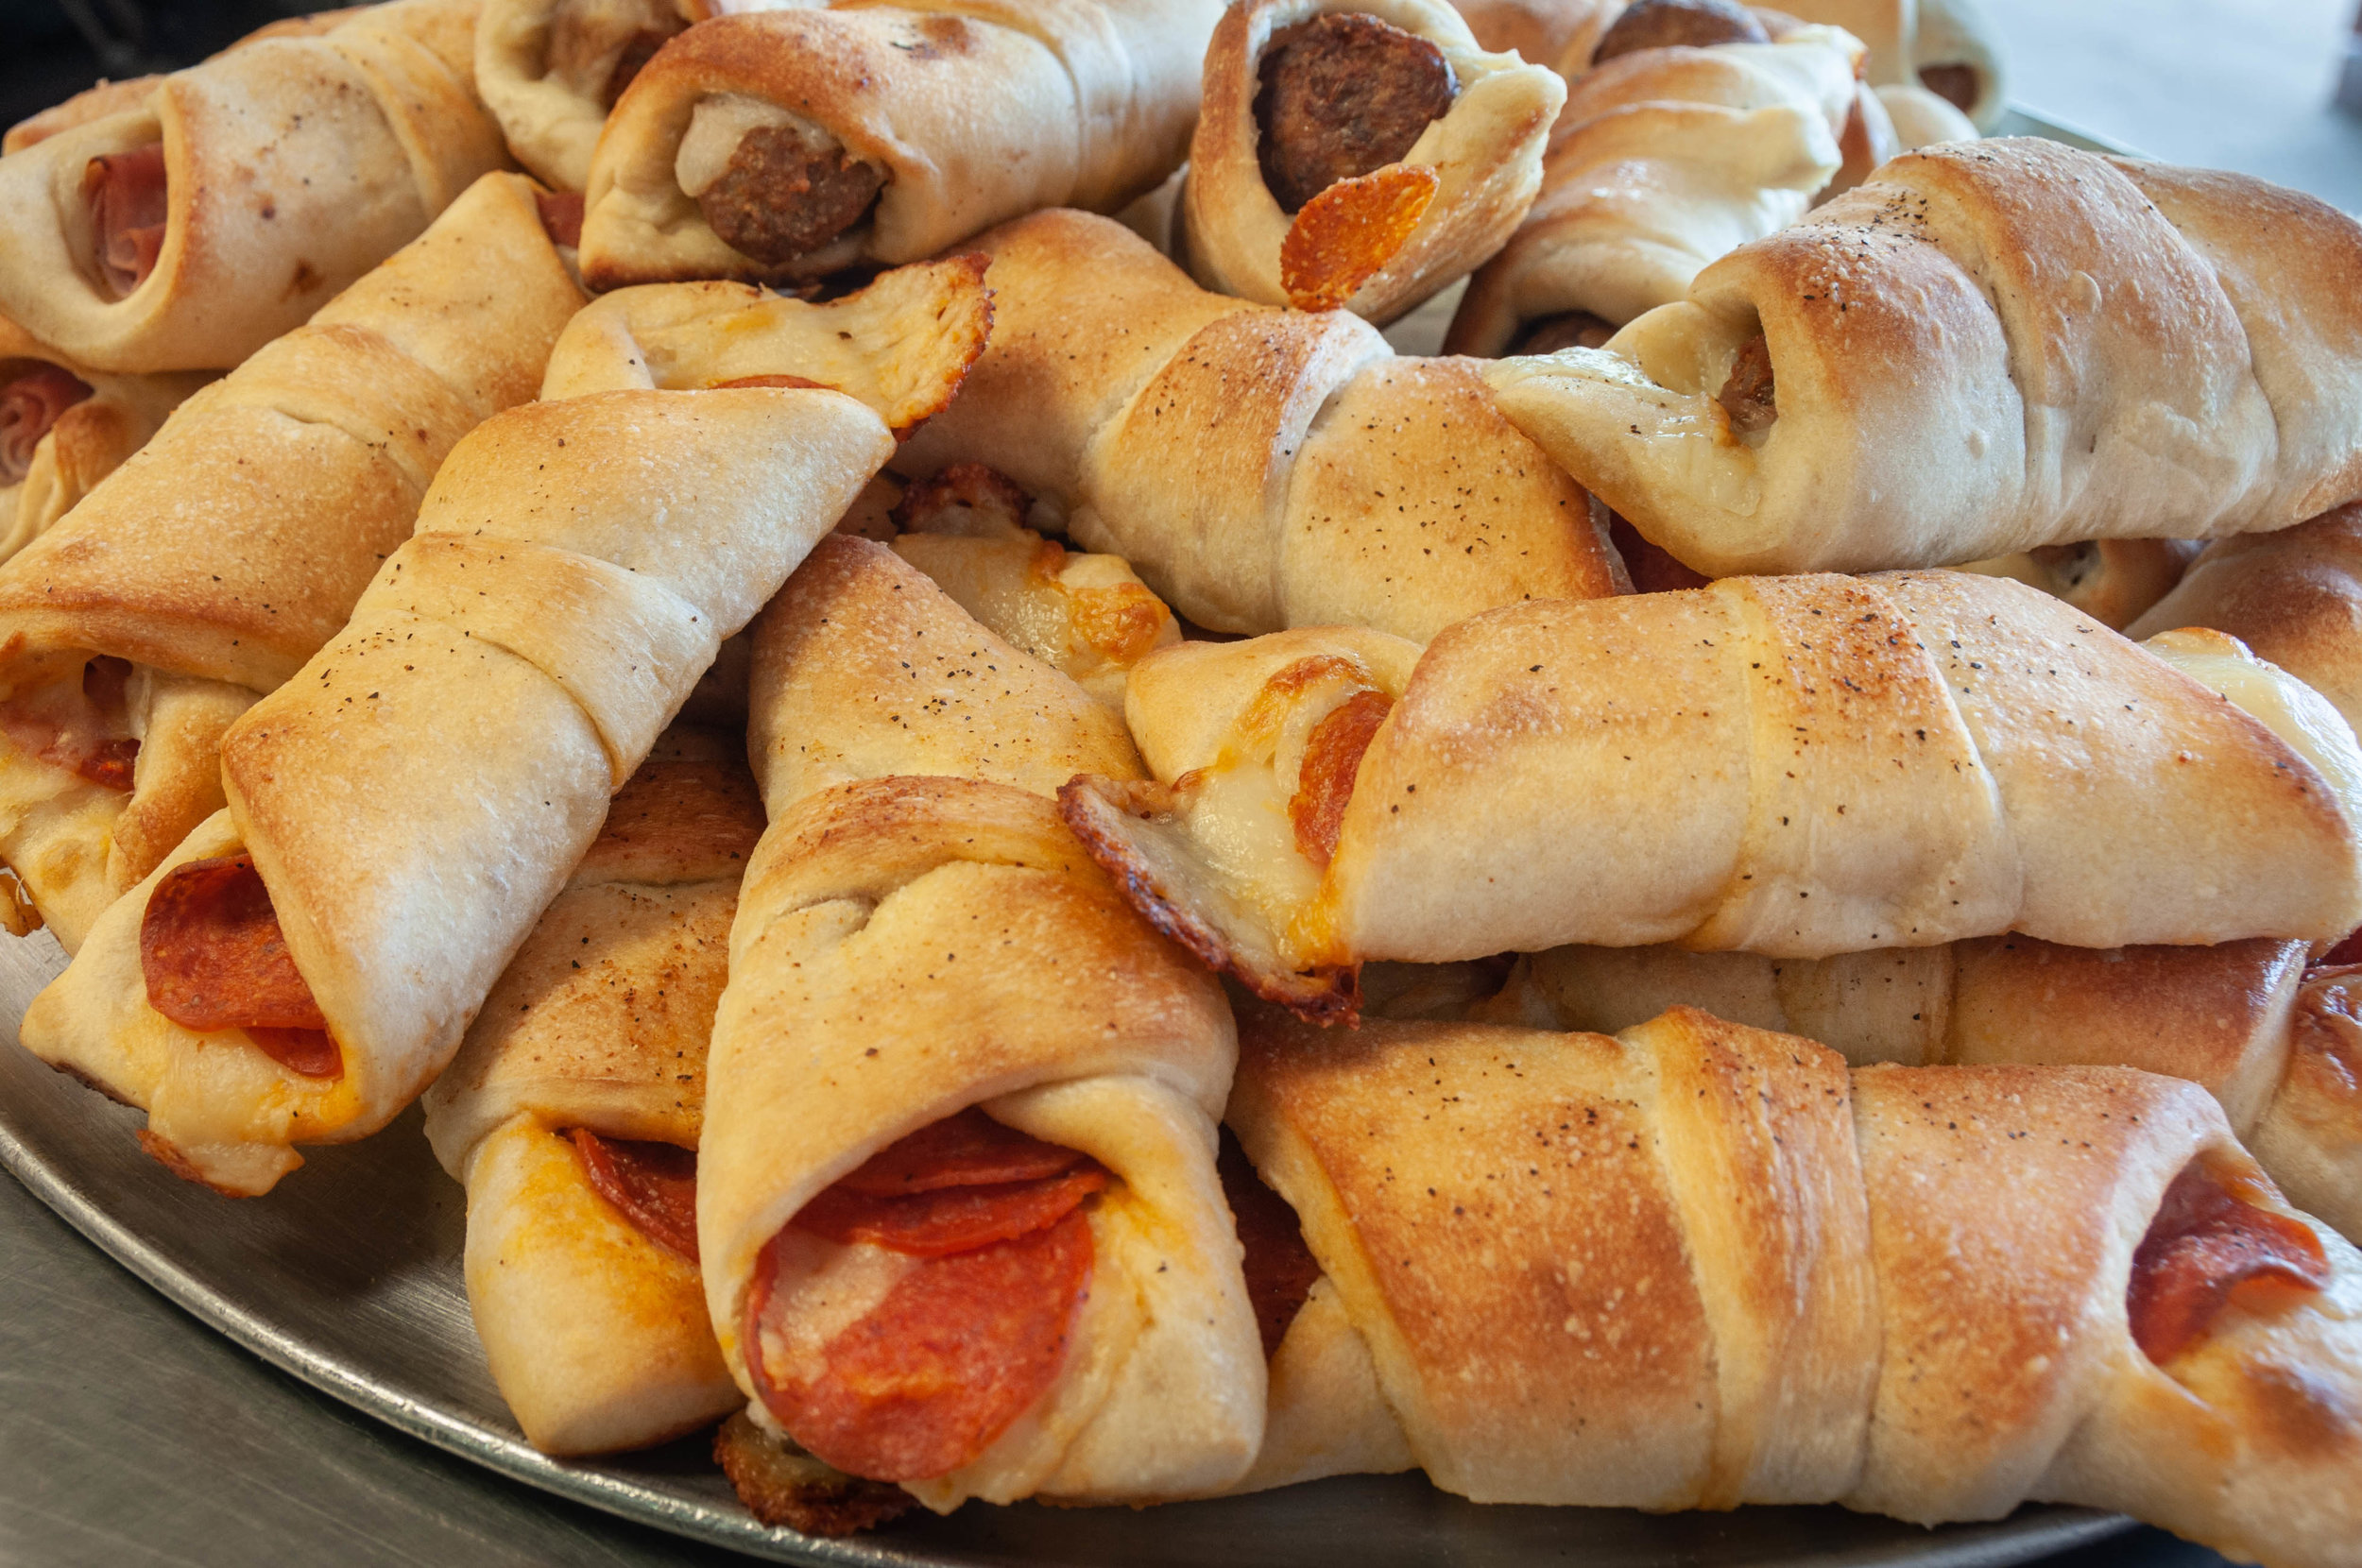 Bravo Pizza West Chester Pa - Peperoni Rolls.jpg